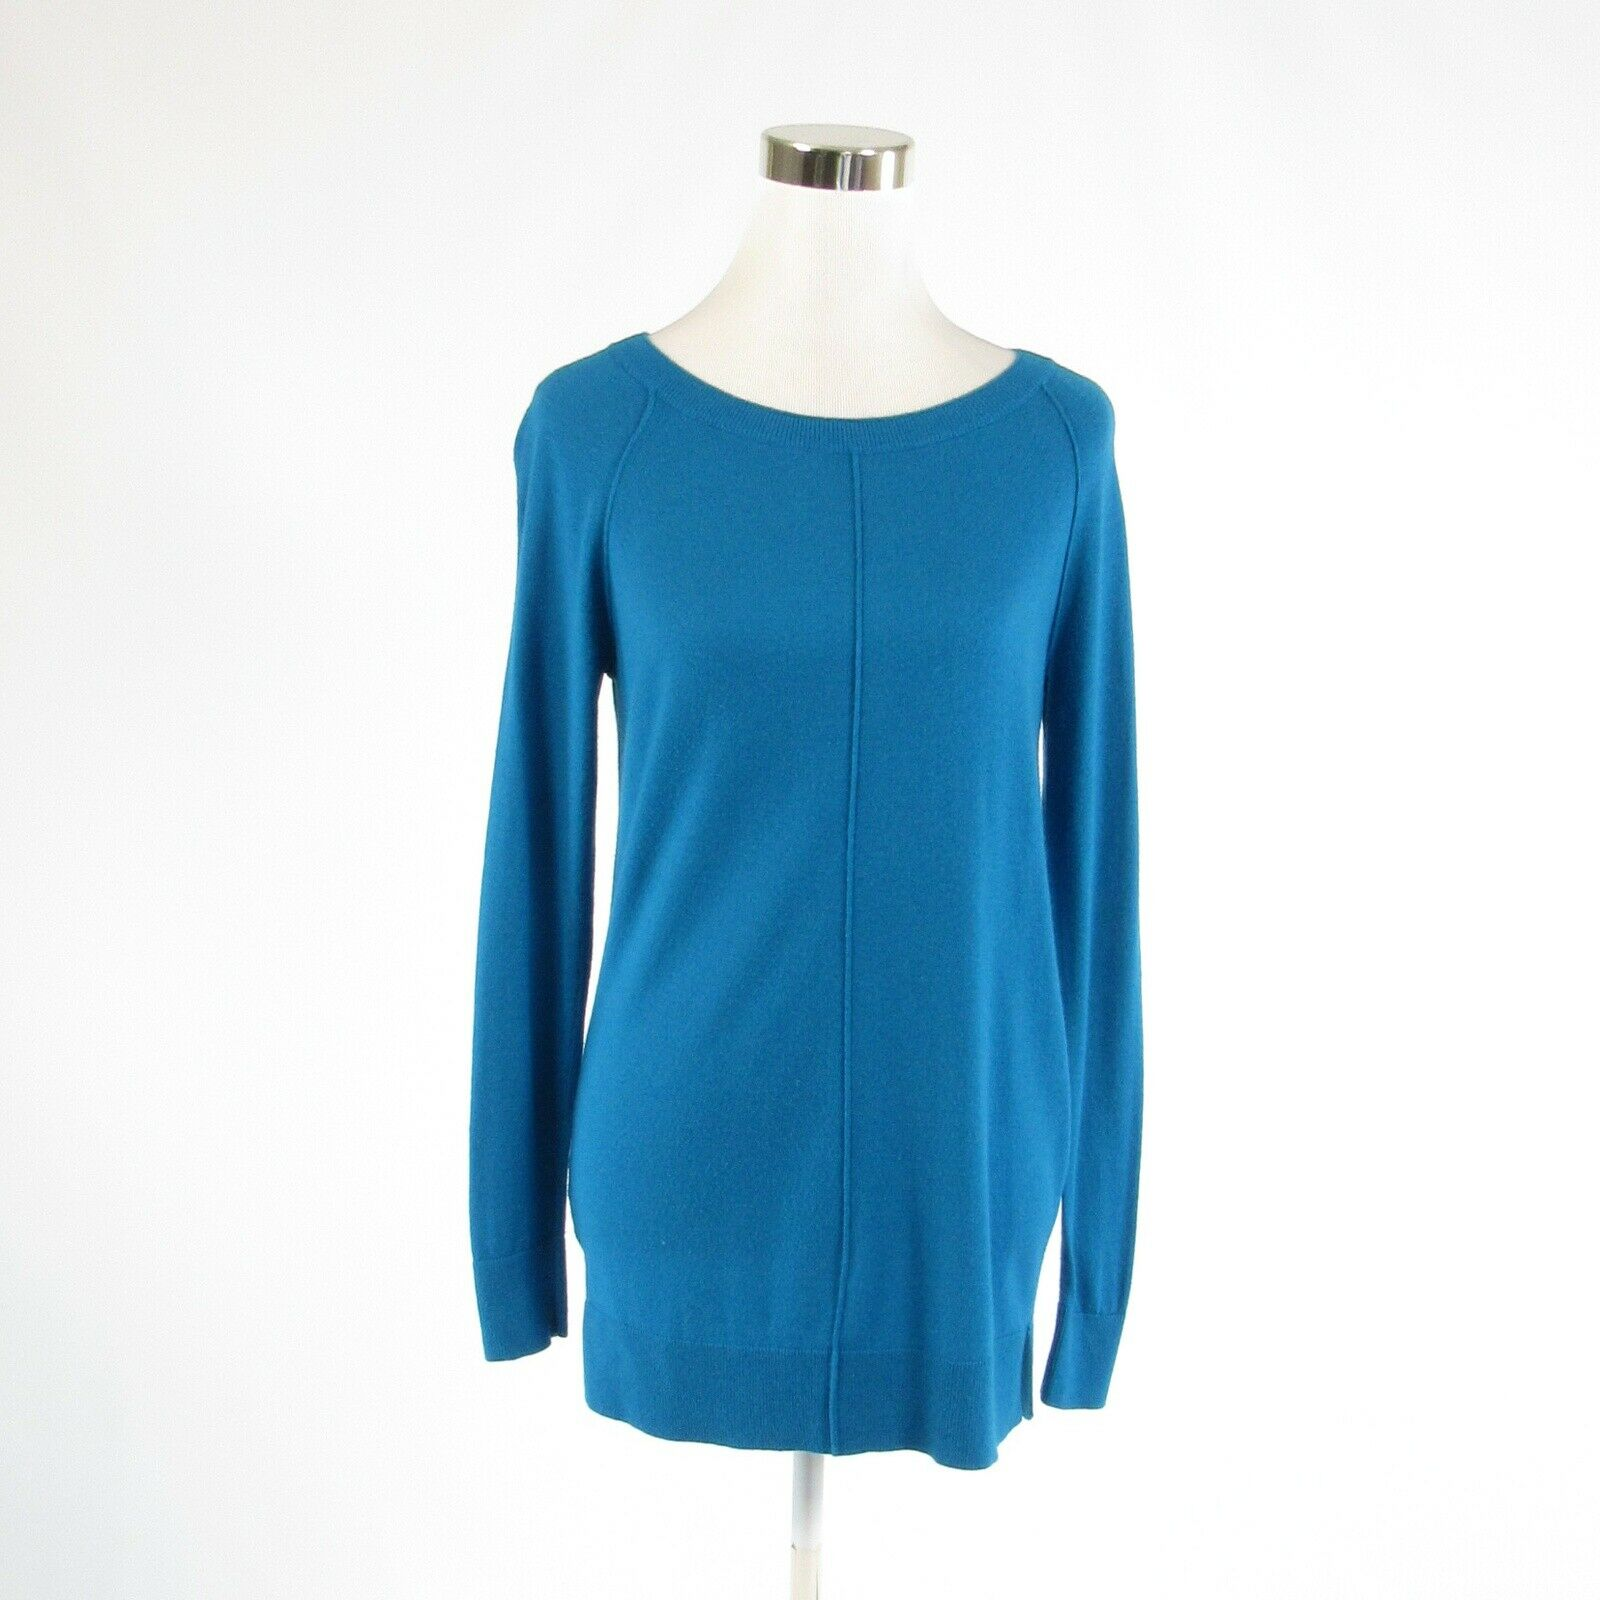 Dark blue ANN TAYLOR exposed seams long sleeve crewneck sweater S-Newish